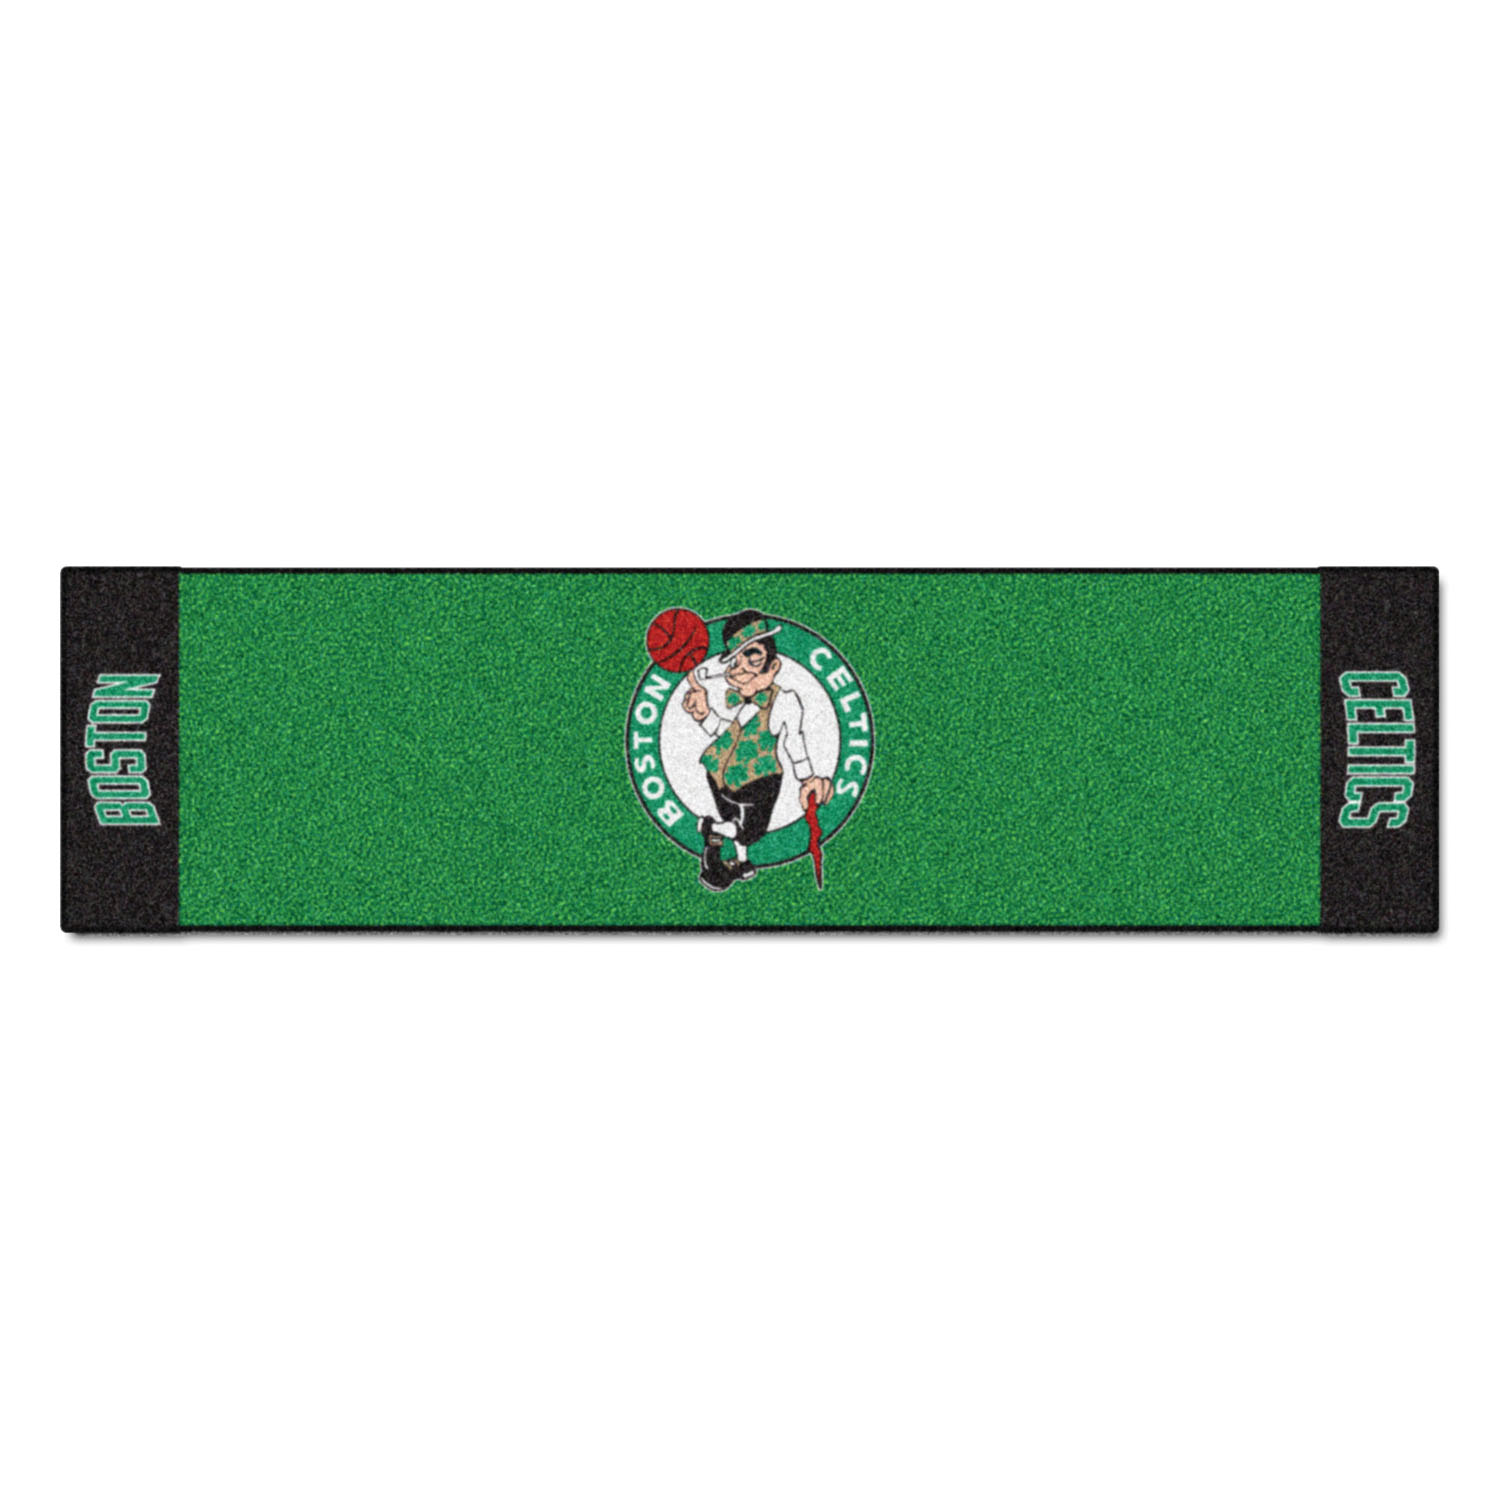 "Fanmats Boston Celtics Putting Green Runner 18""x72"""